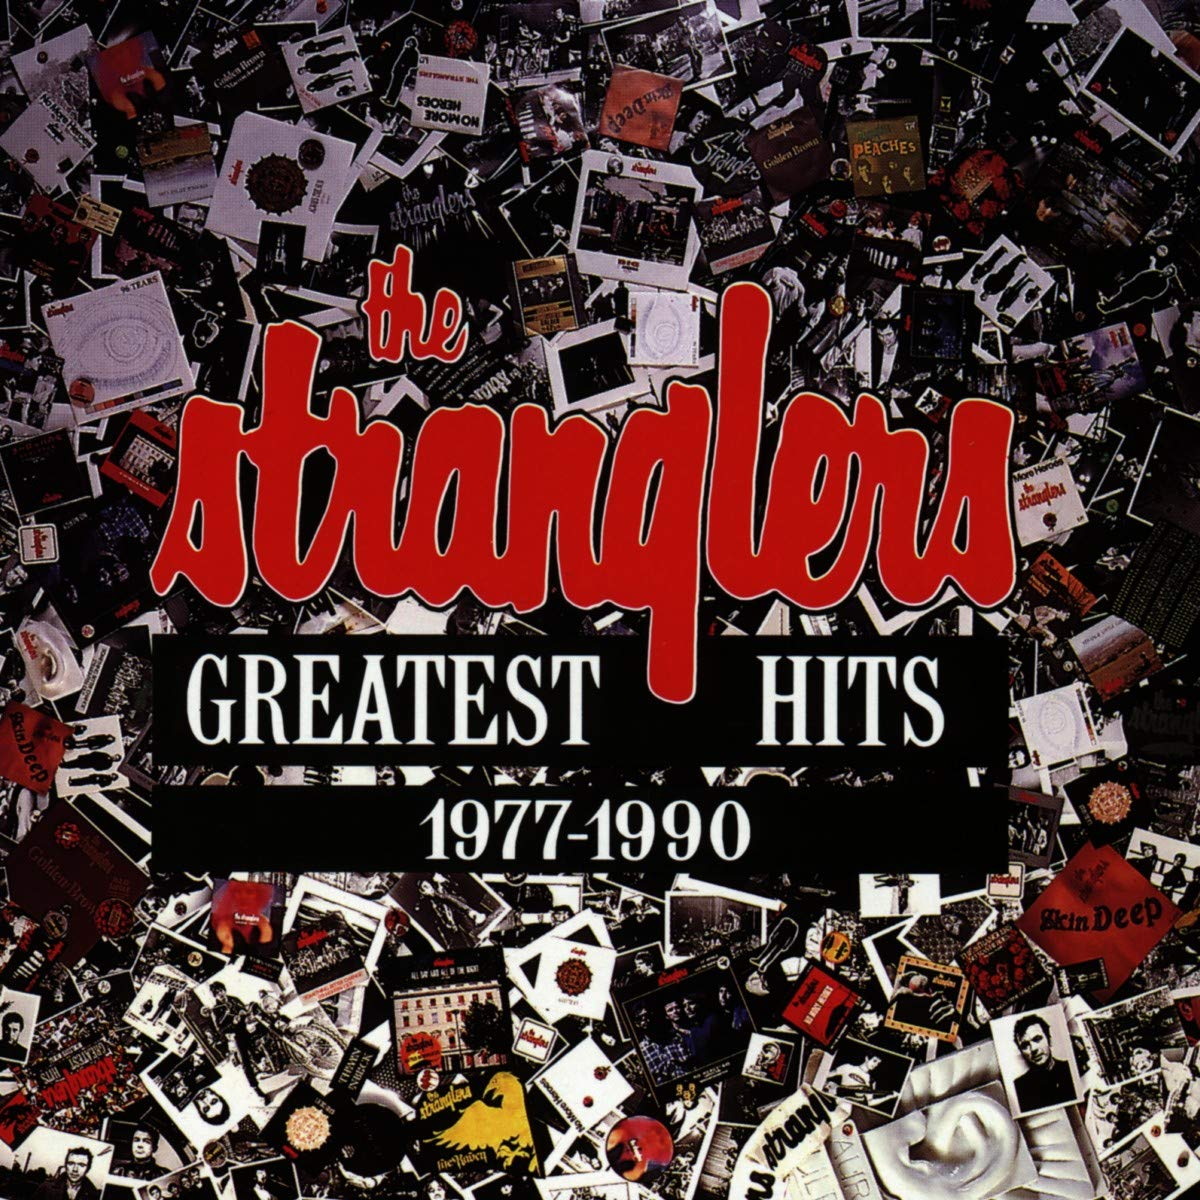 Greatest Hits 1977-1990: The Stranglers: Amazon.es: Música